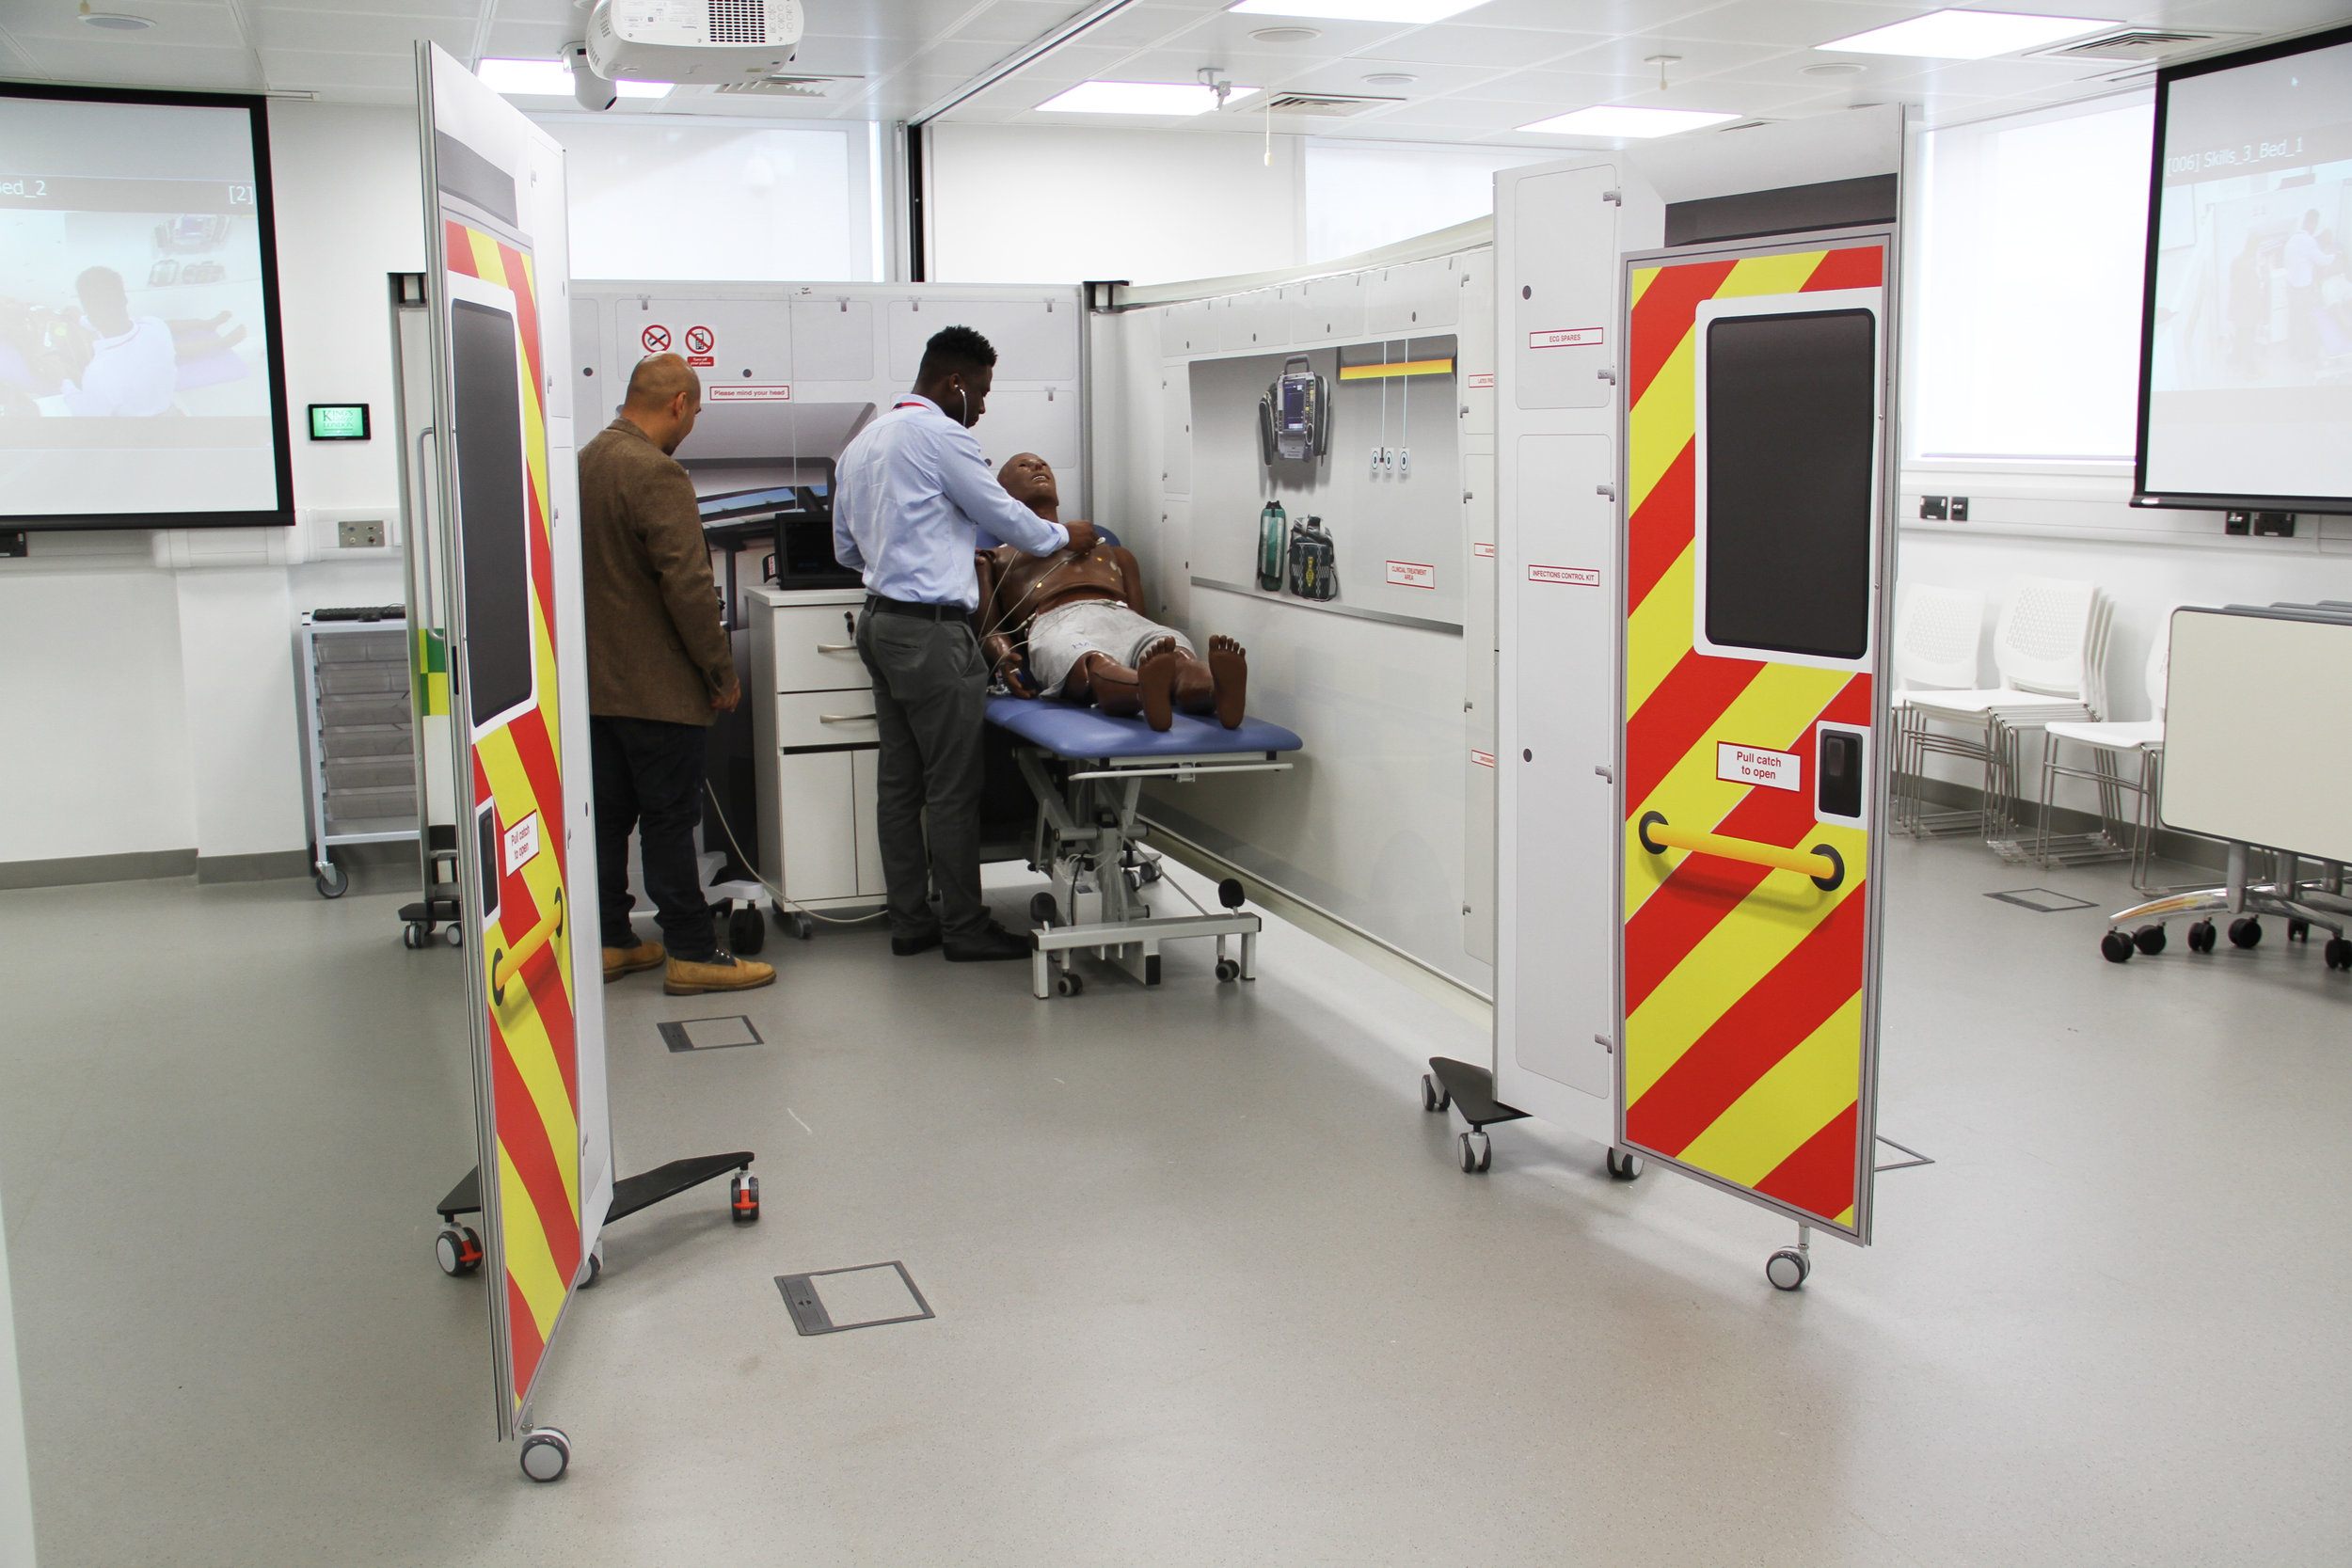 KwickScreen Simbulance for Medical Simulation Training at Imperial College London